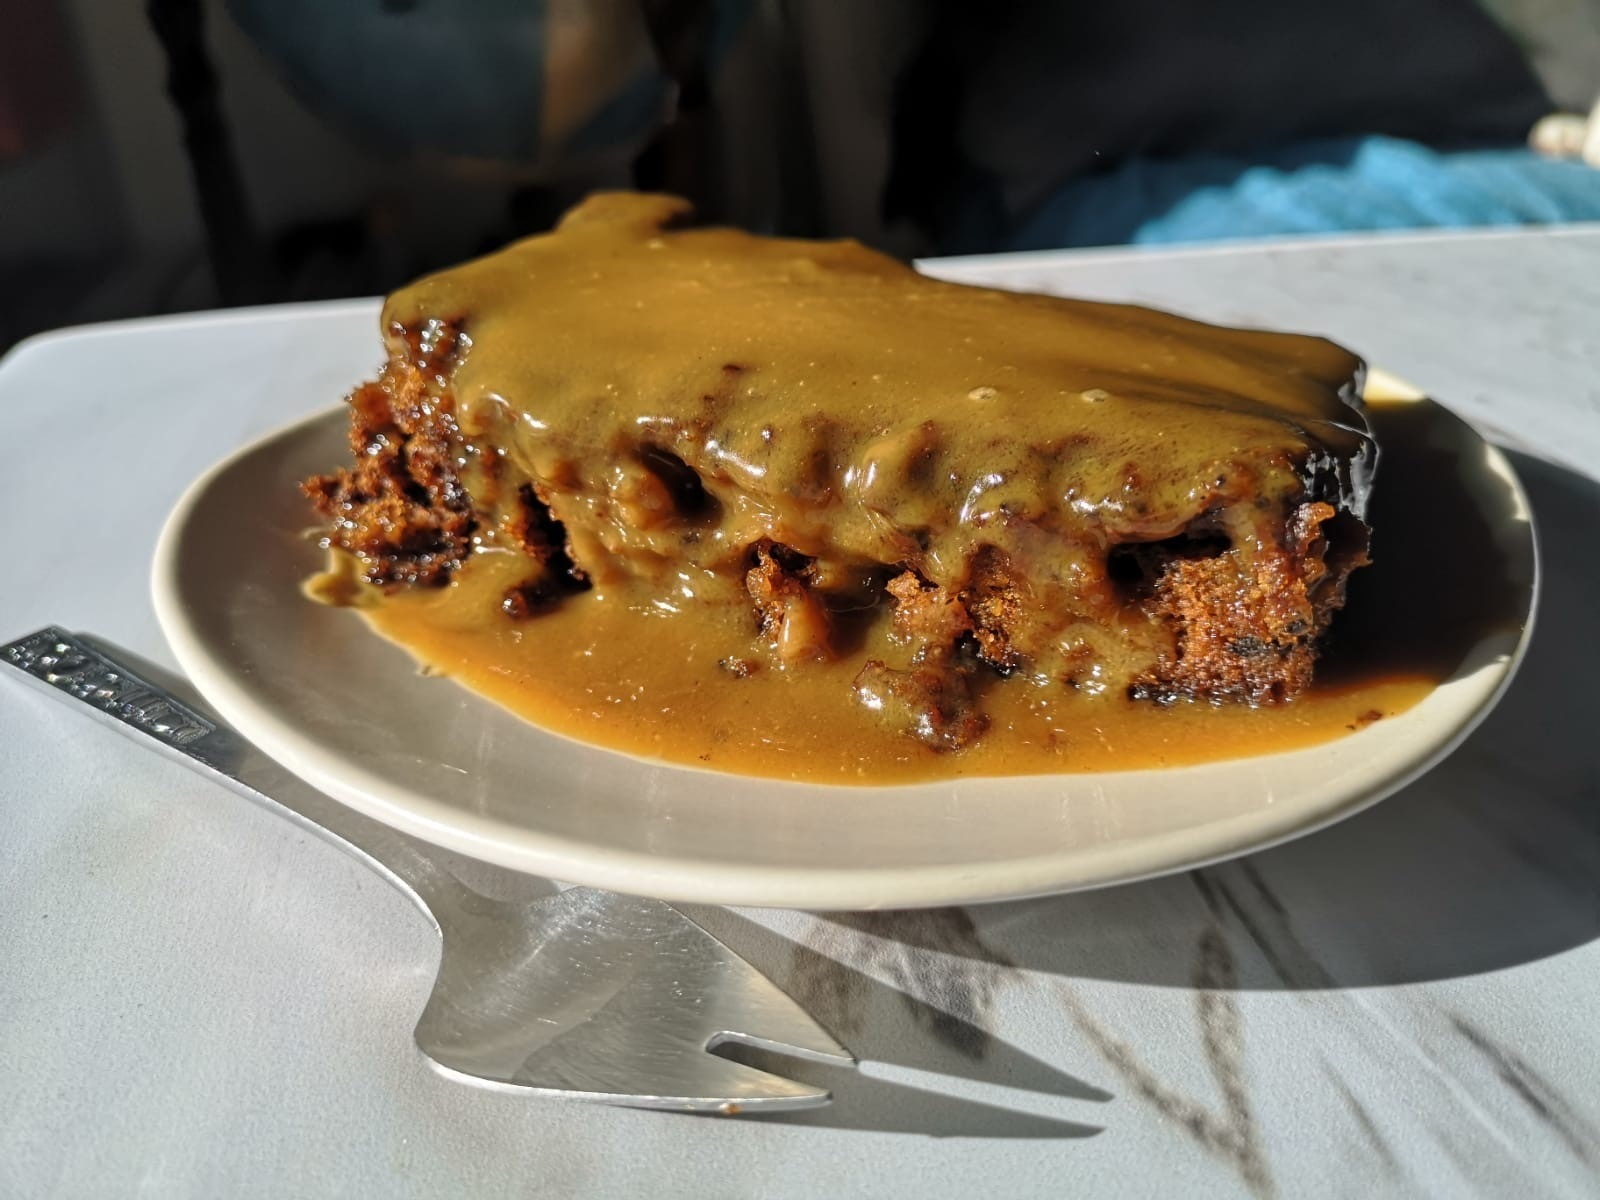 Sticky Toffee Pudding with toffee sauce - Serves 2